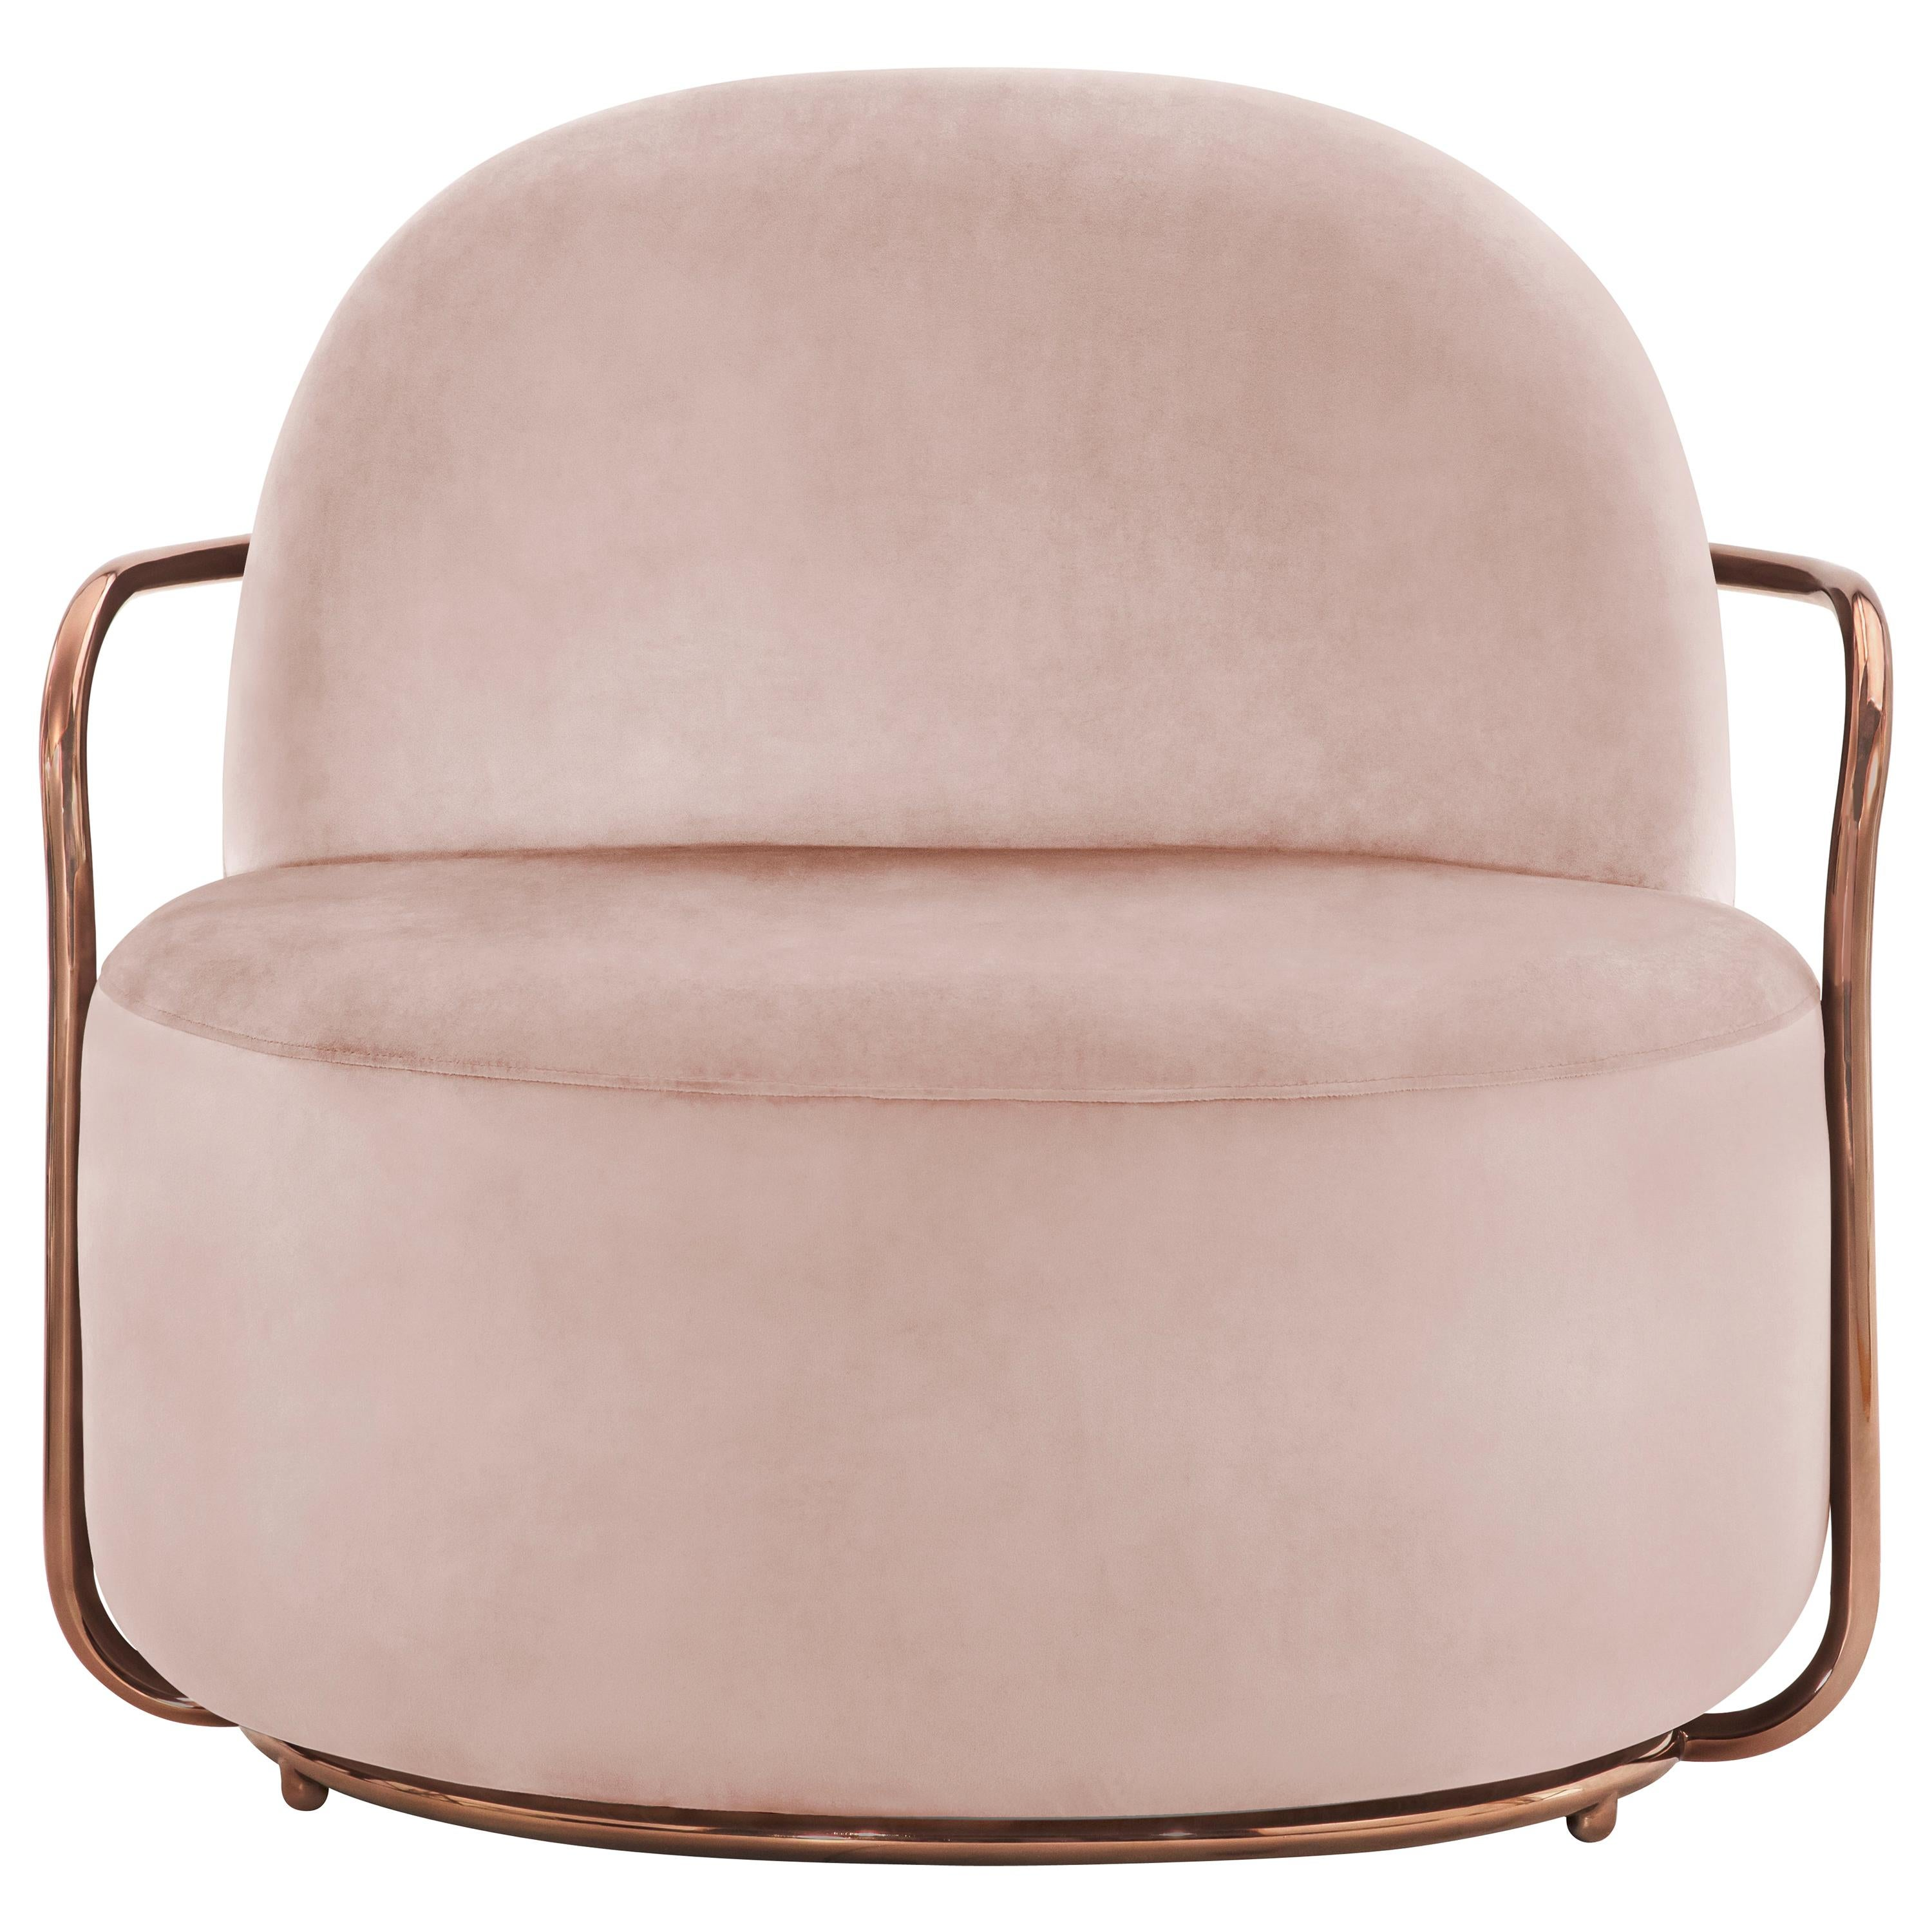 Orion Lounge Chair with Plush Pink Velvet and Rose Gold Arms by Nika Zupanc